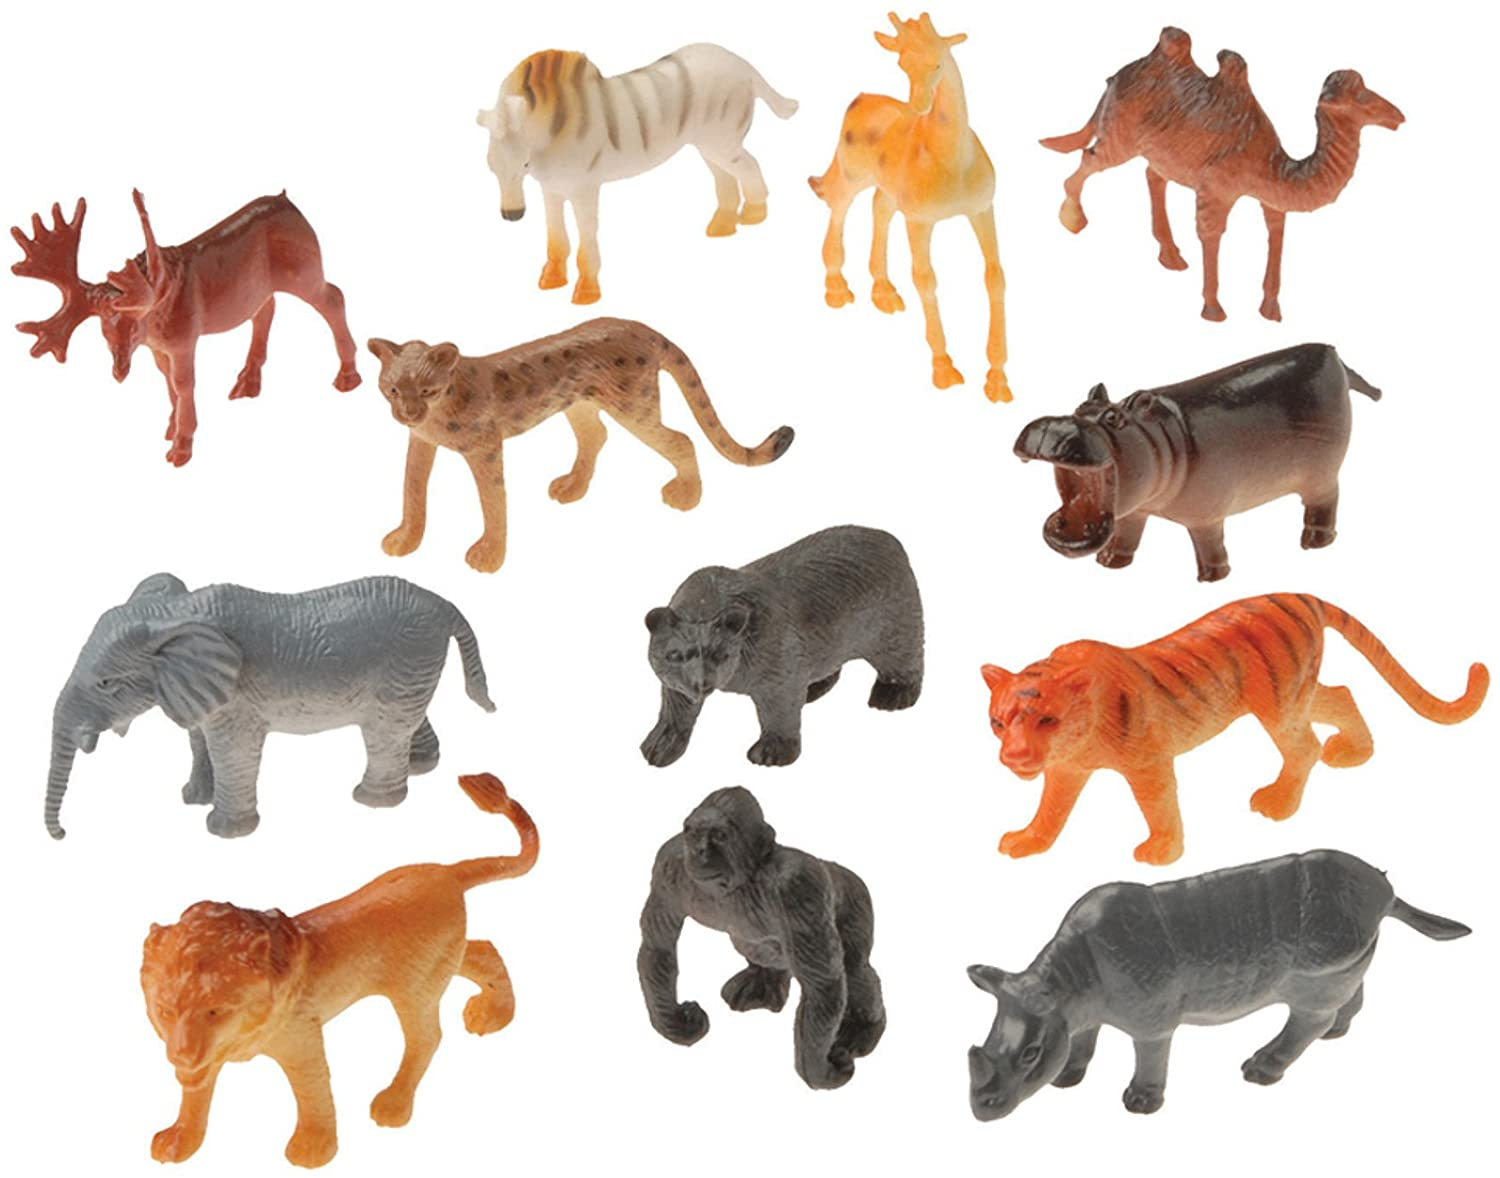 Us Toy Mini Wild Animals Action Figure by U.S. Toy